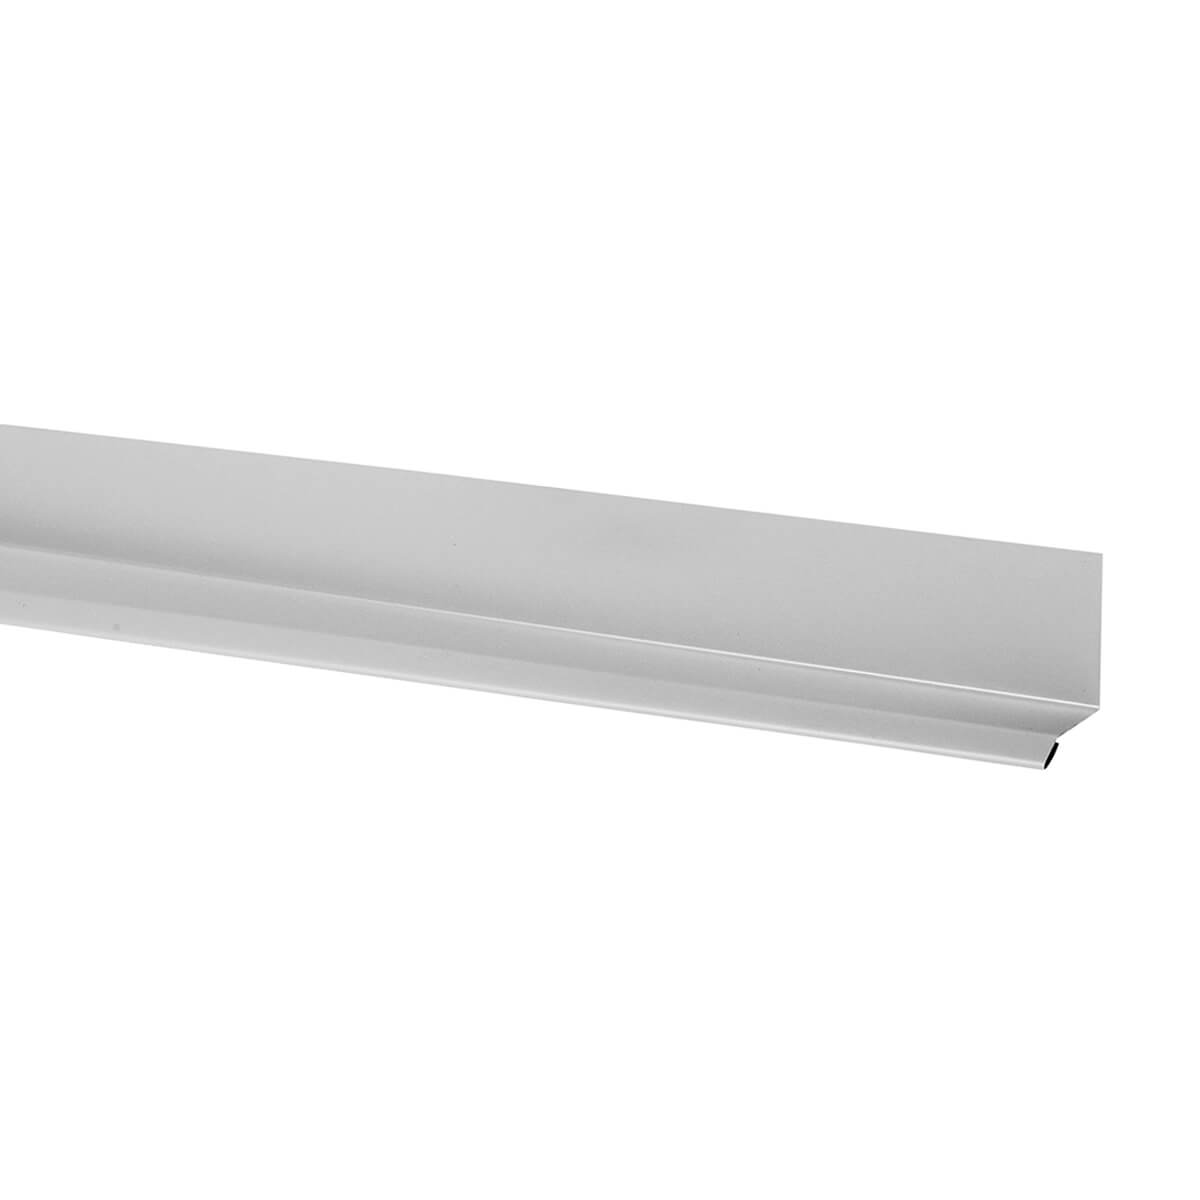 KAYCAN ALUMINUM SOFFIT J TRIM - 3/8-IN X 12-FT - CHOCOLATE BROWN<br/>